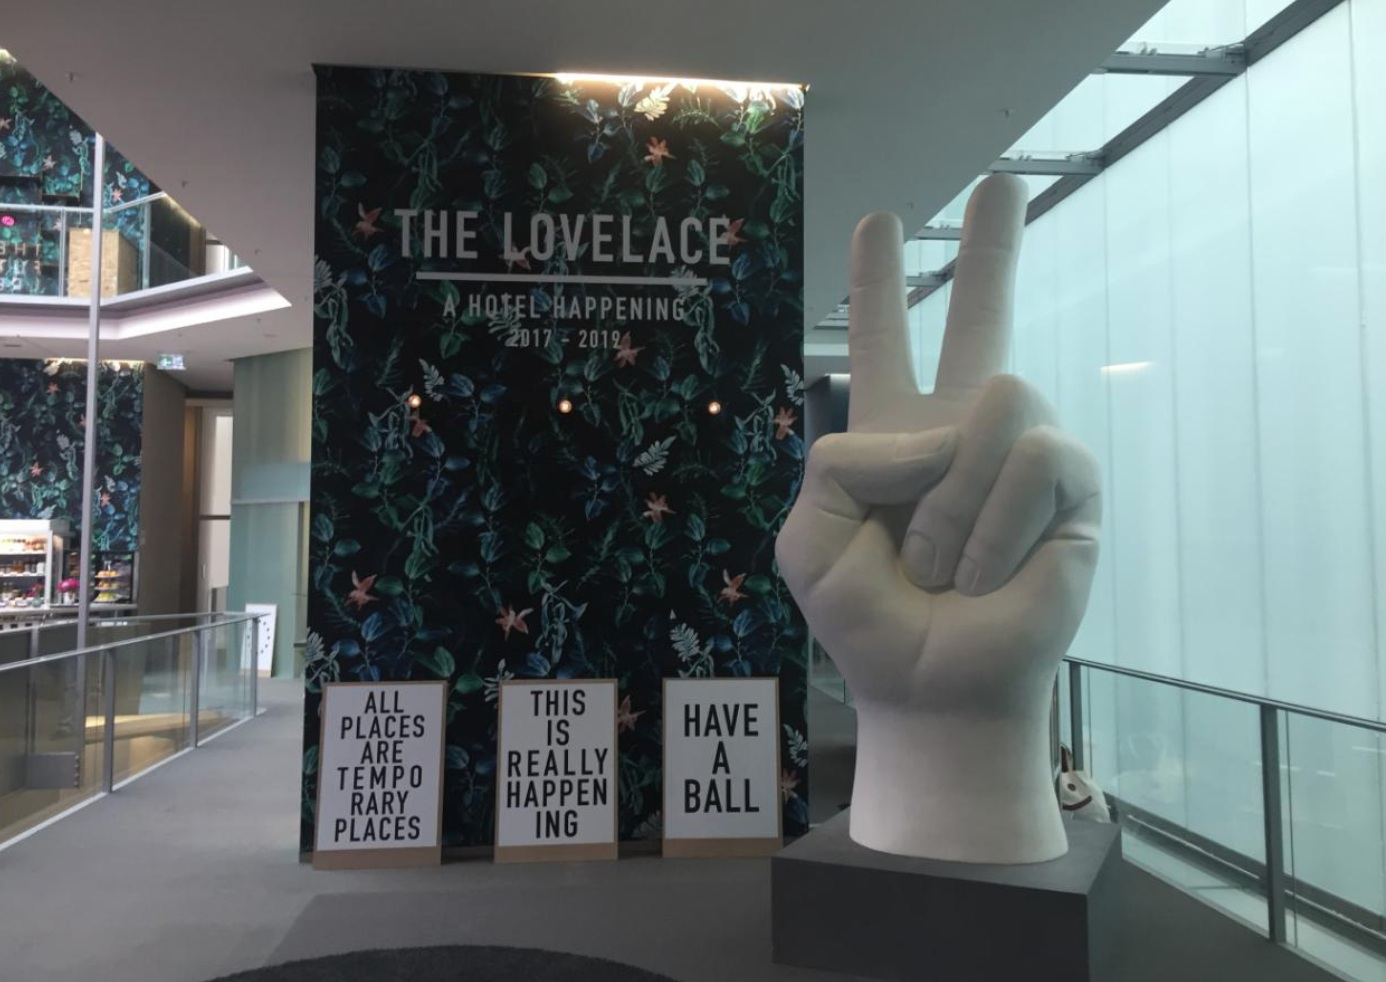 pic 560x420 - The Lovelace – A hotel happening